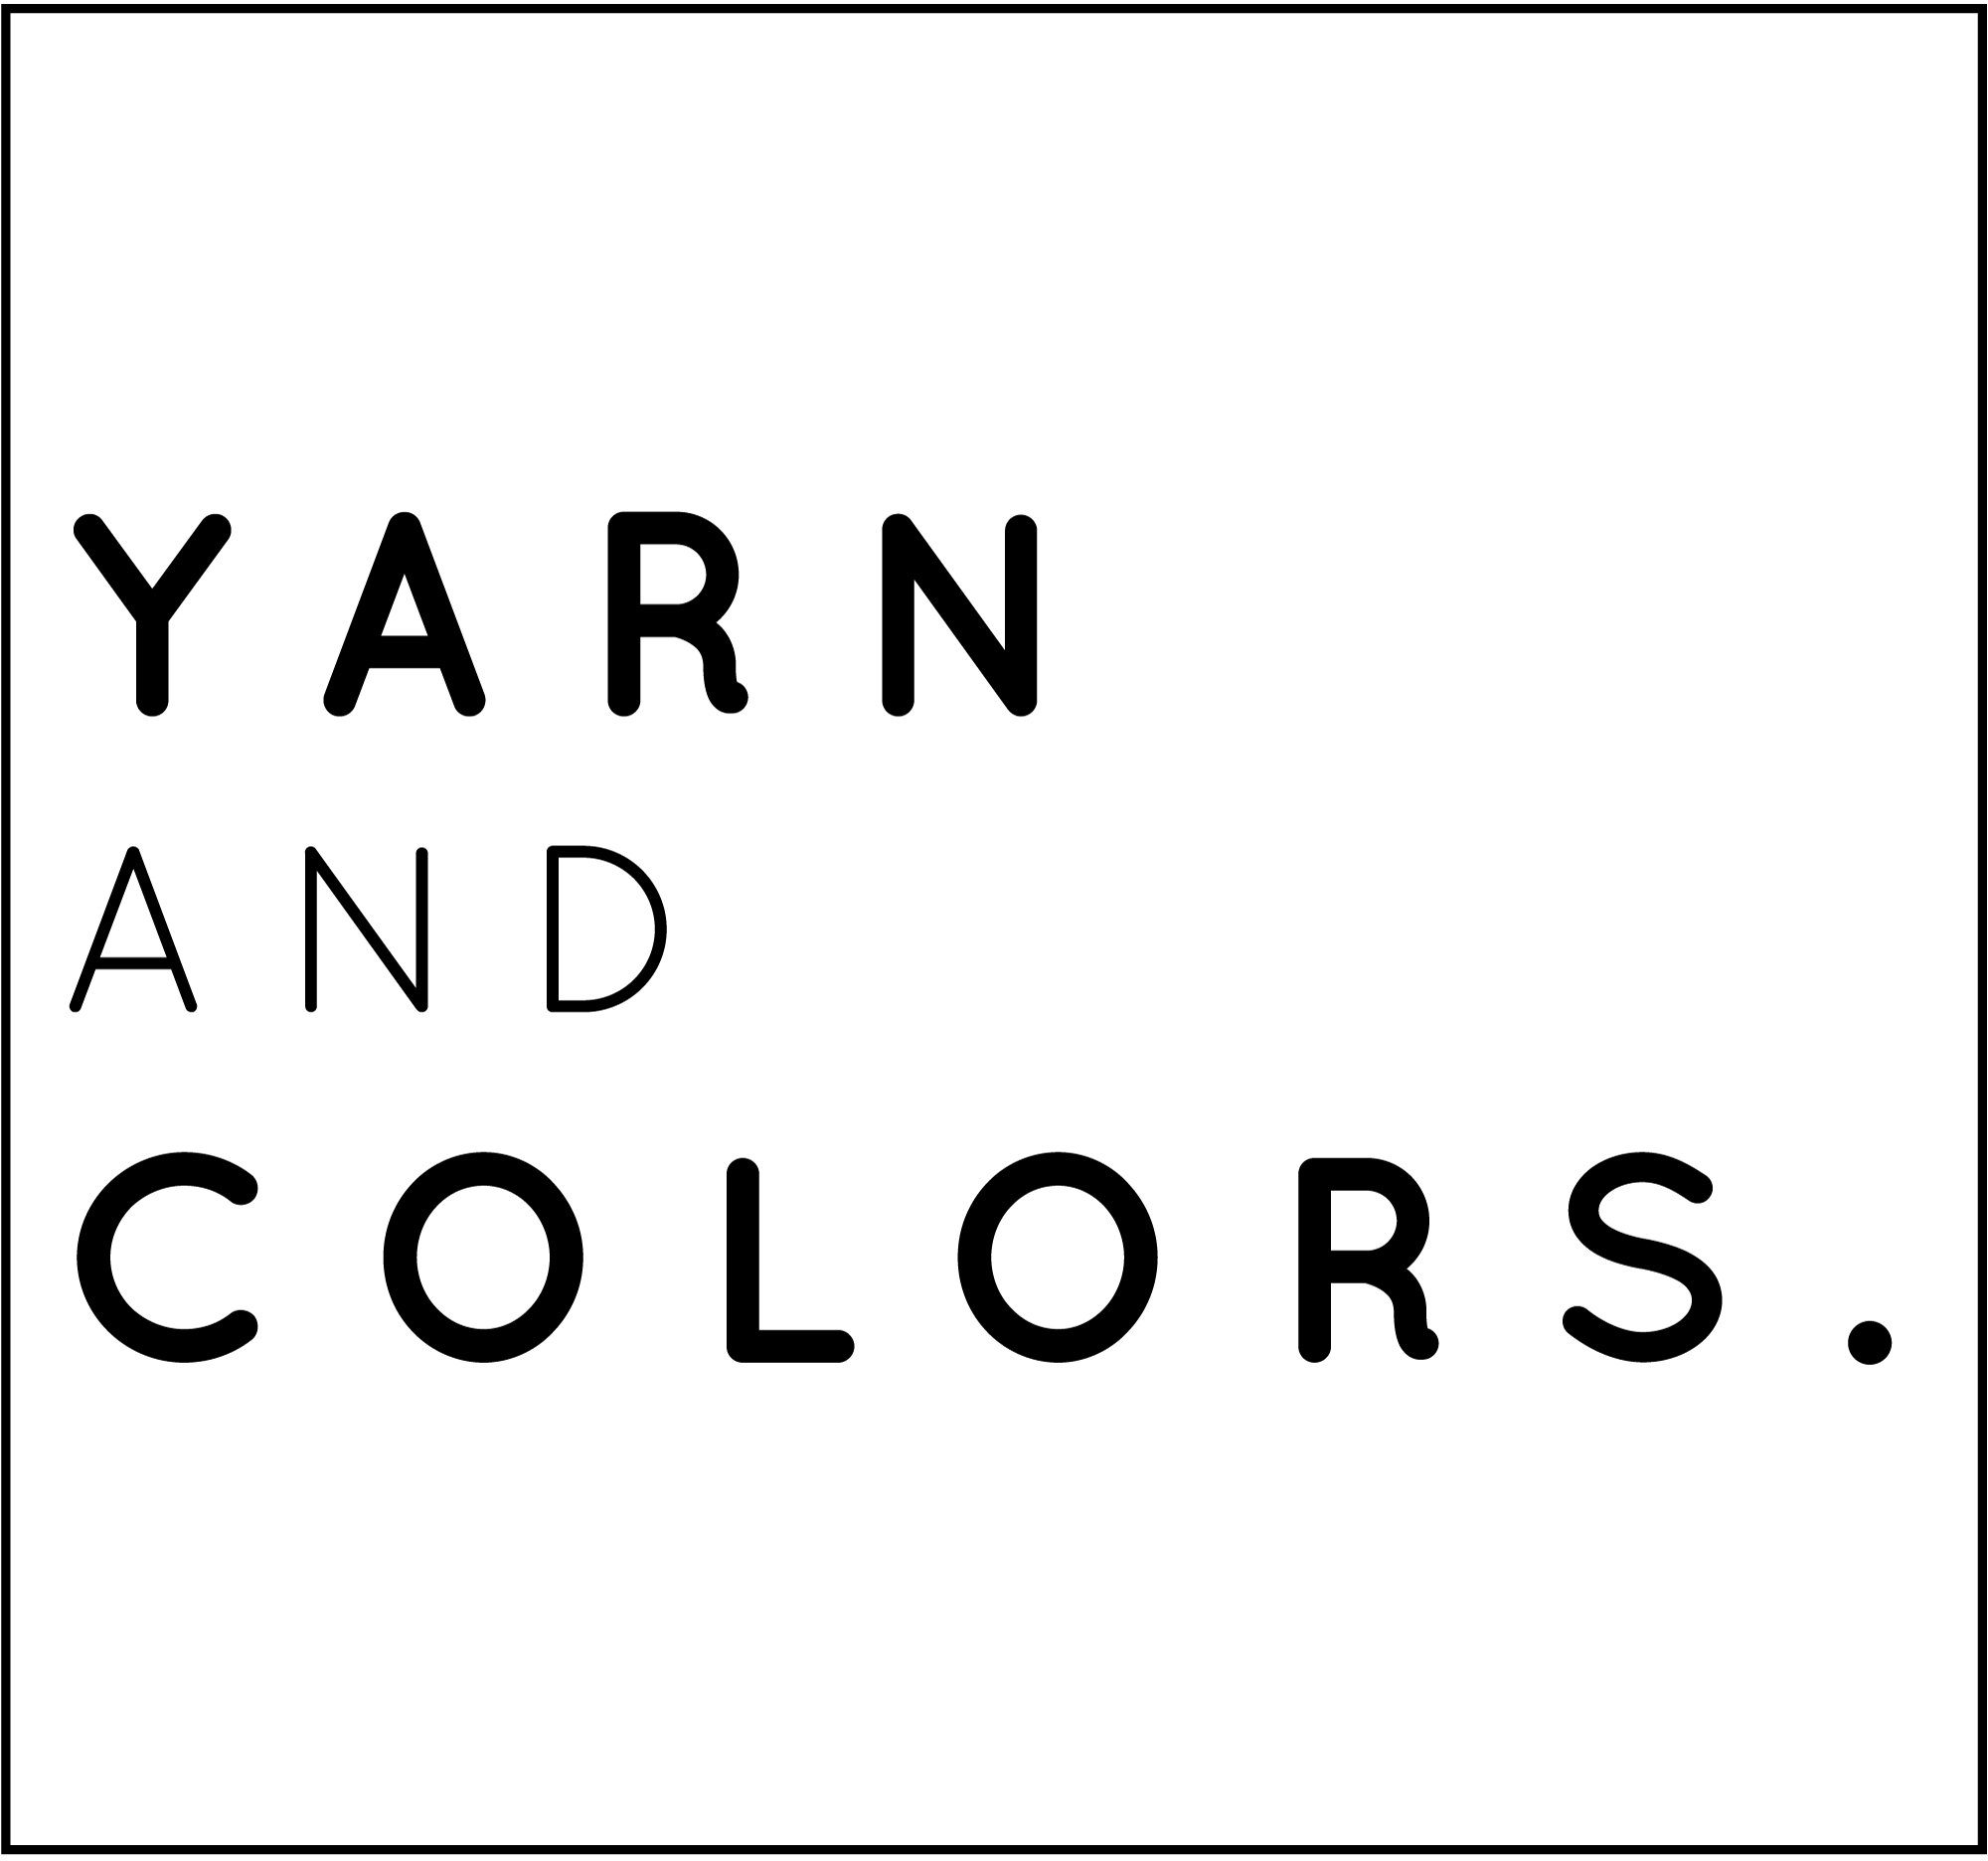 yarn and colors - brand